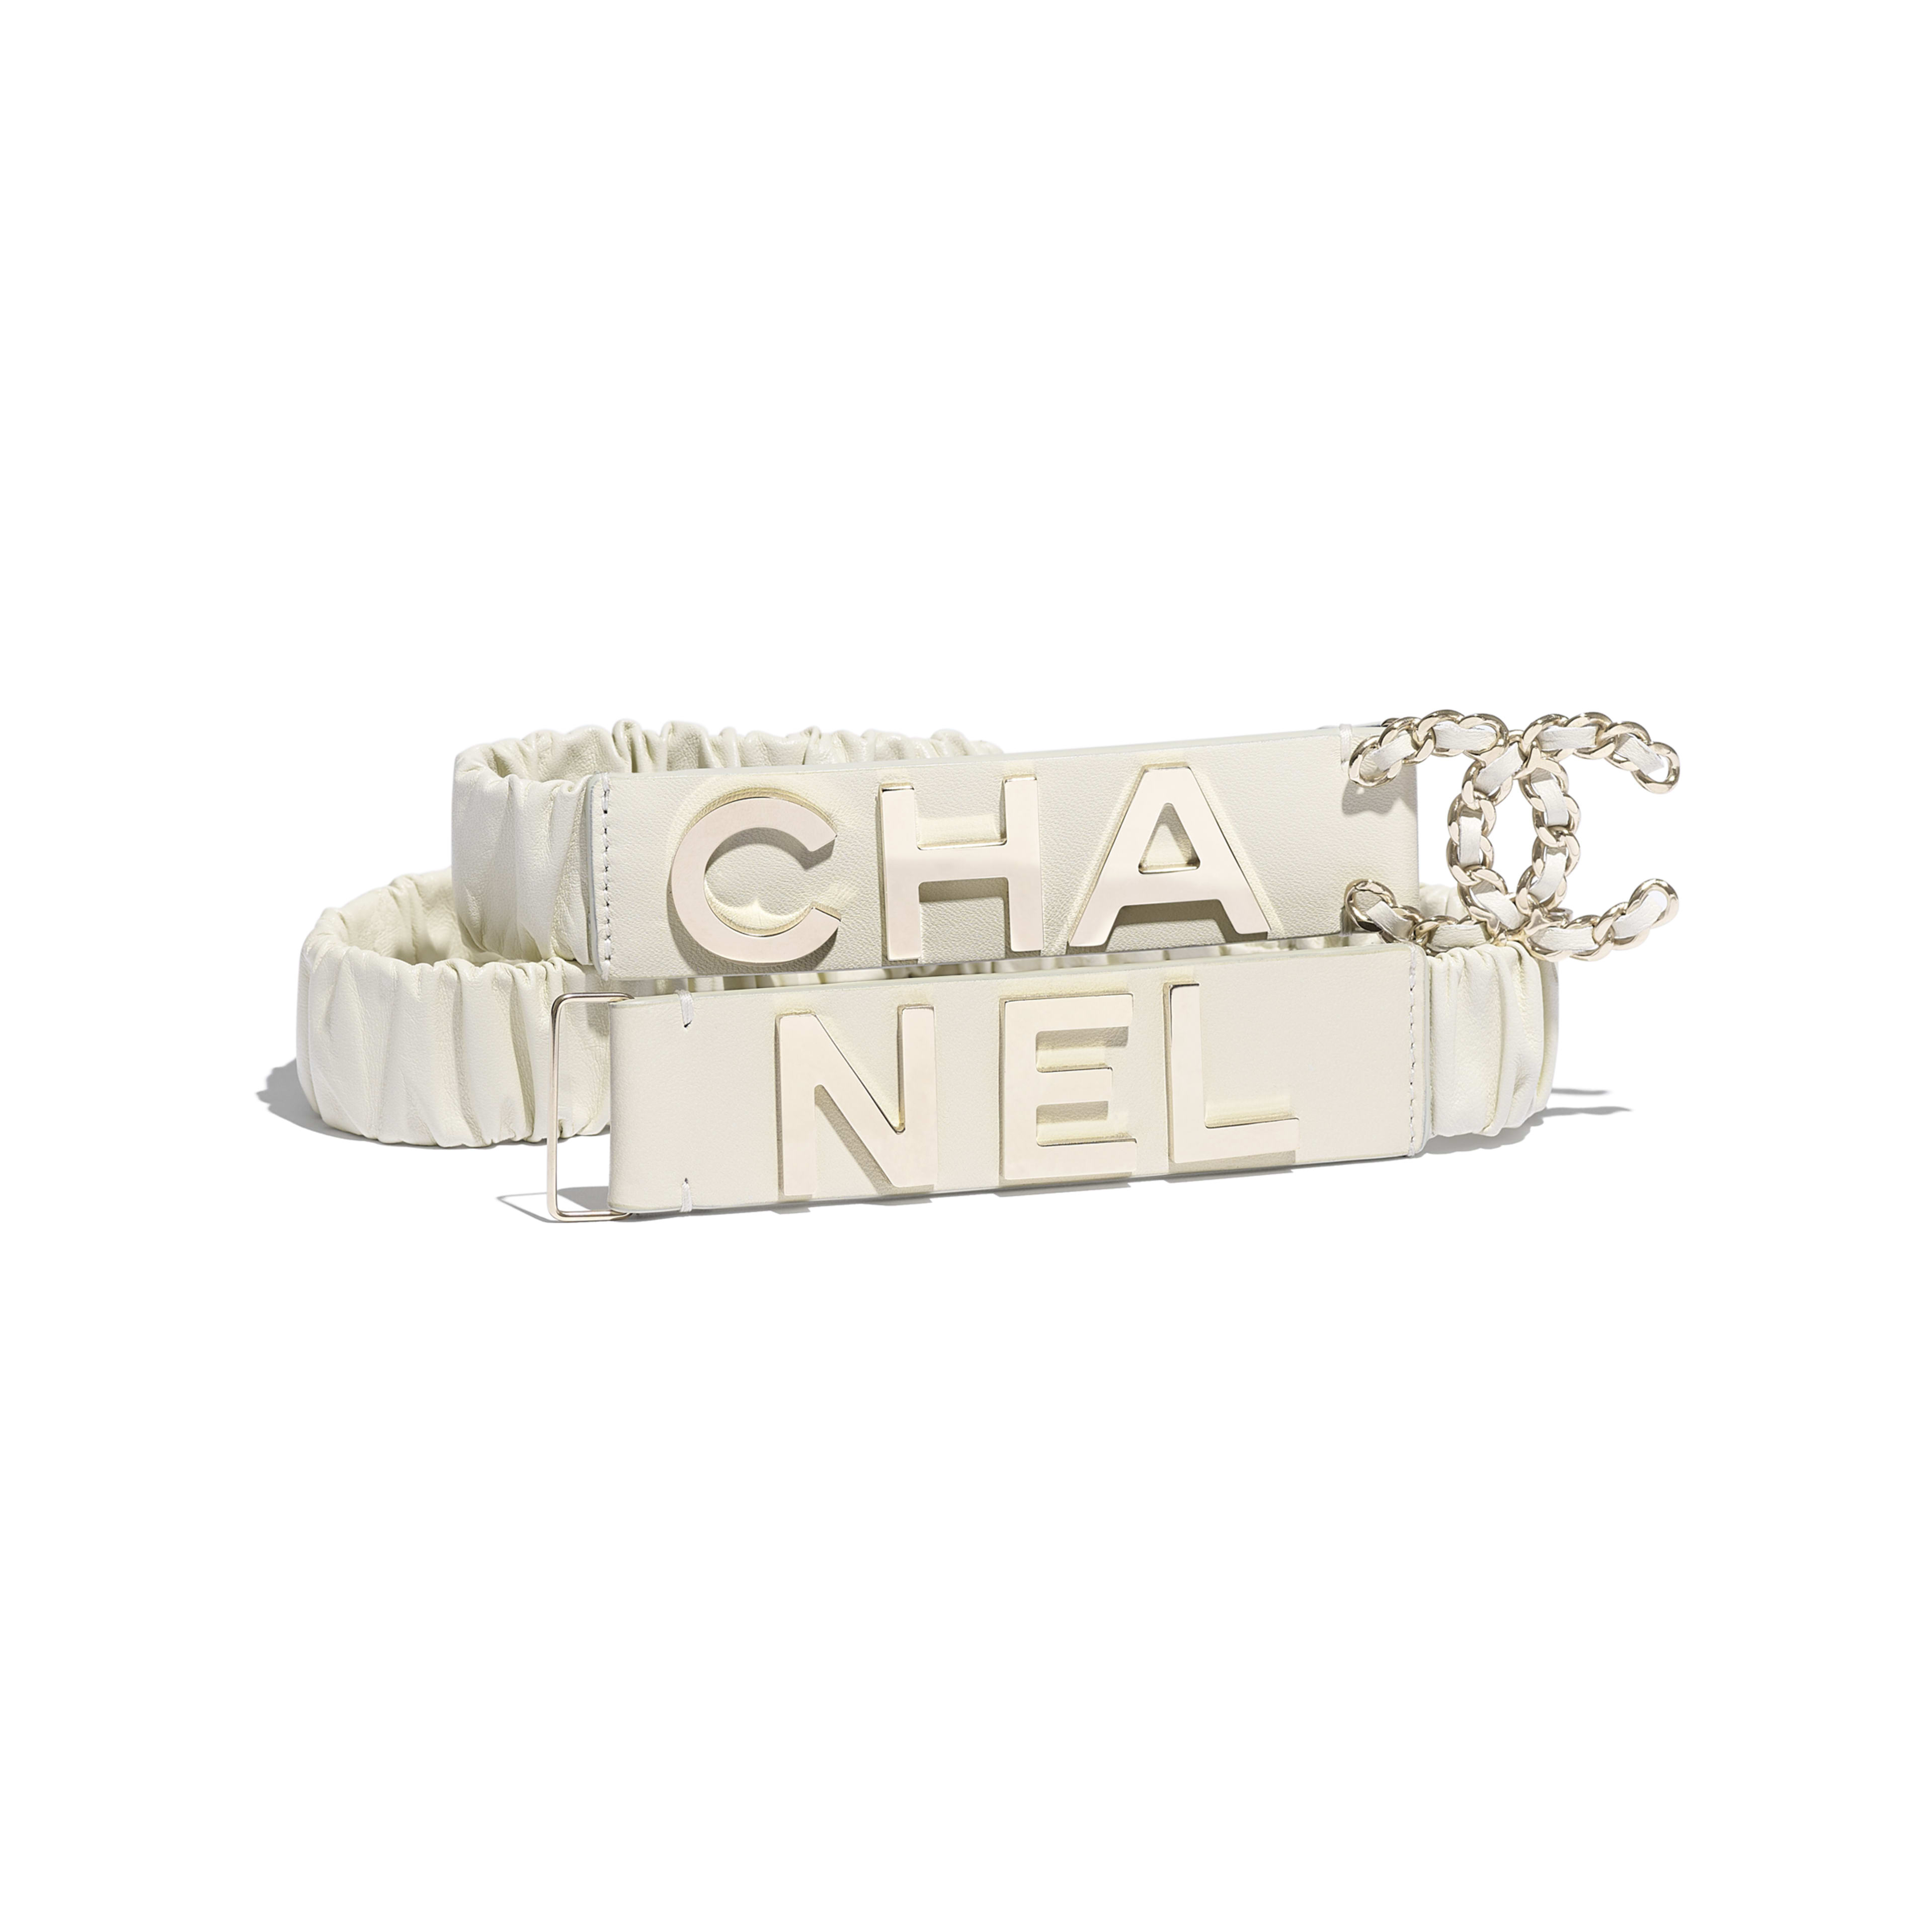 Belt - Ivory - Lambskin & Gold-Tone Metal - Default view - see full sized version